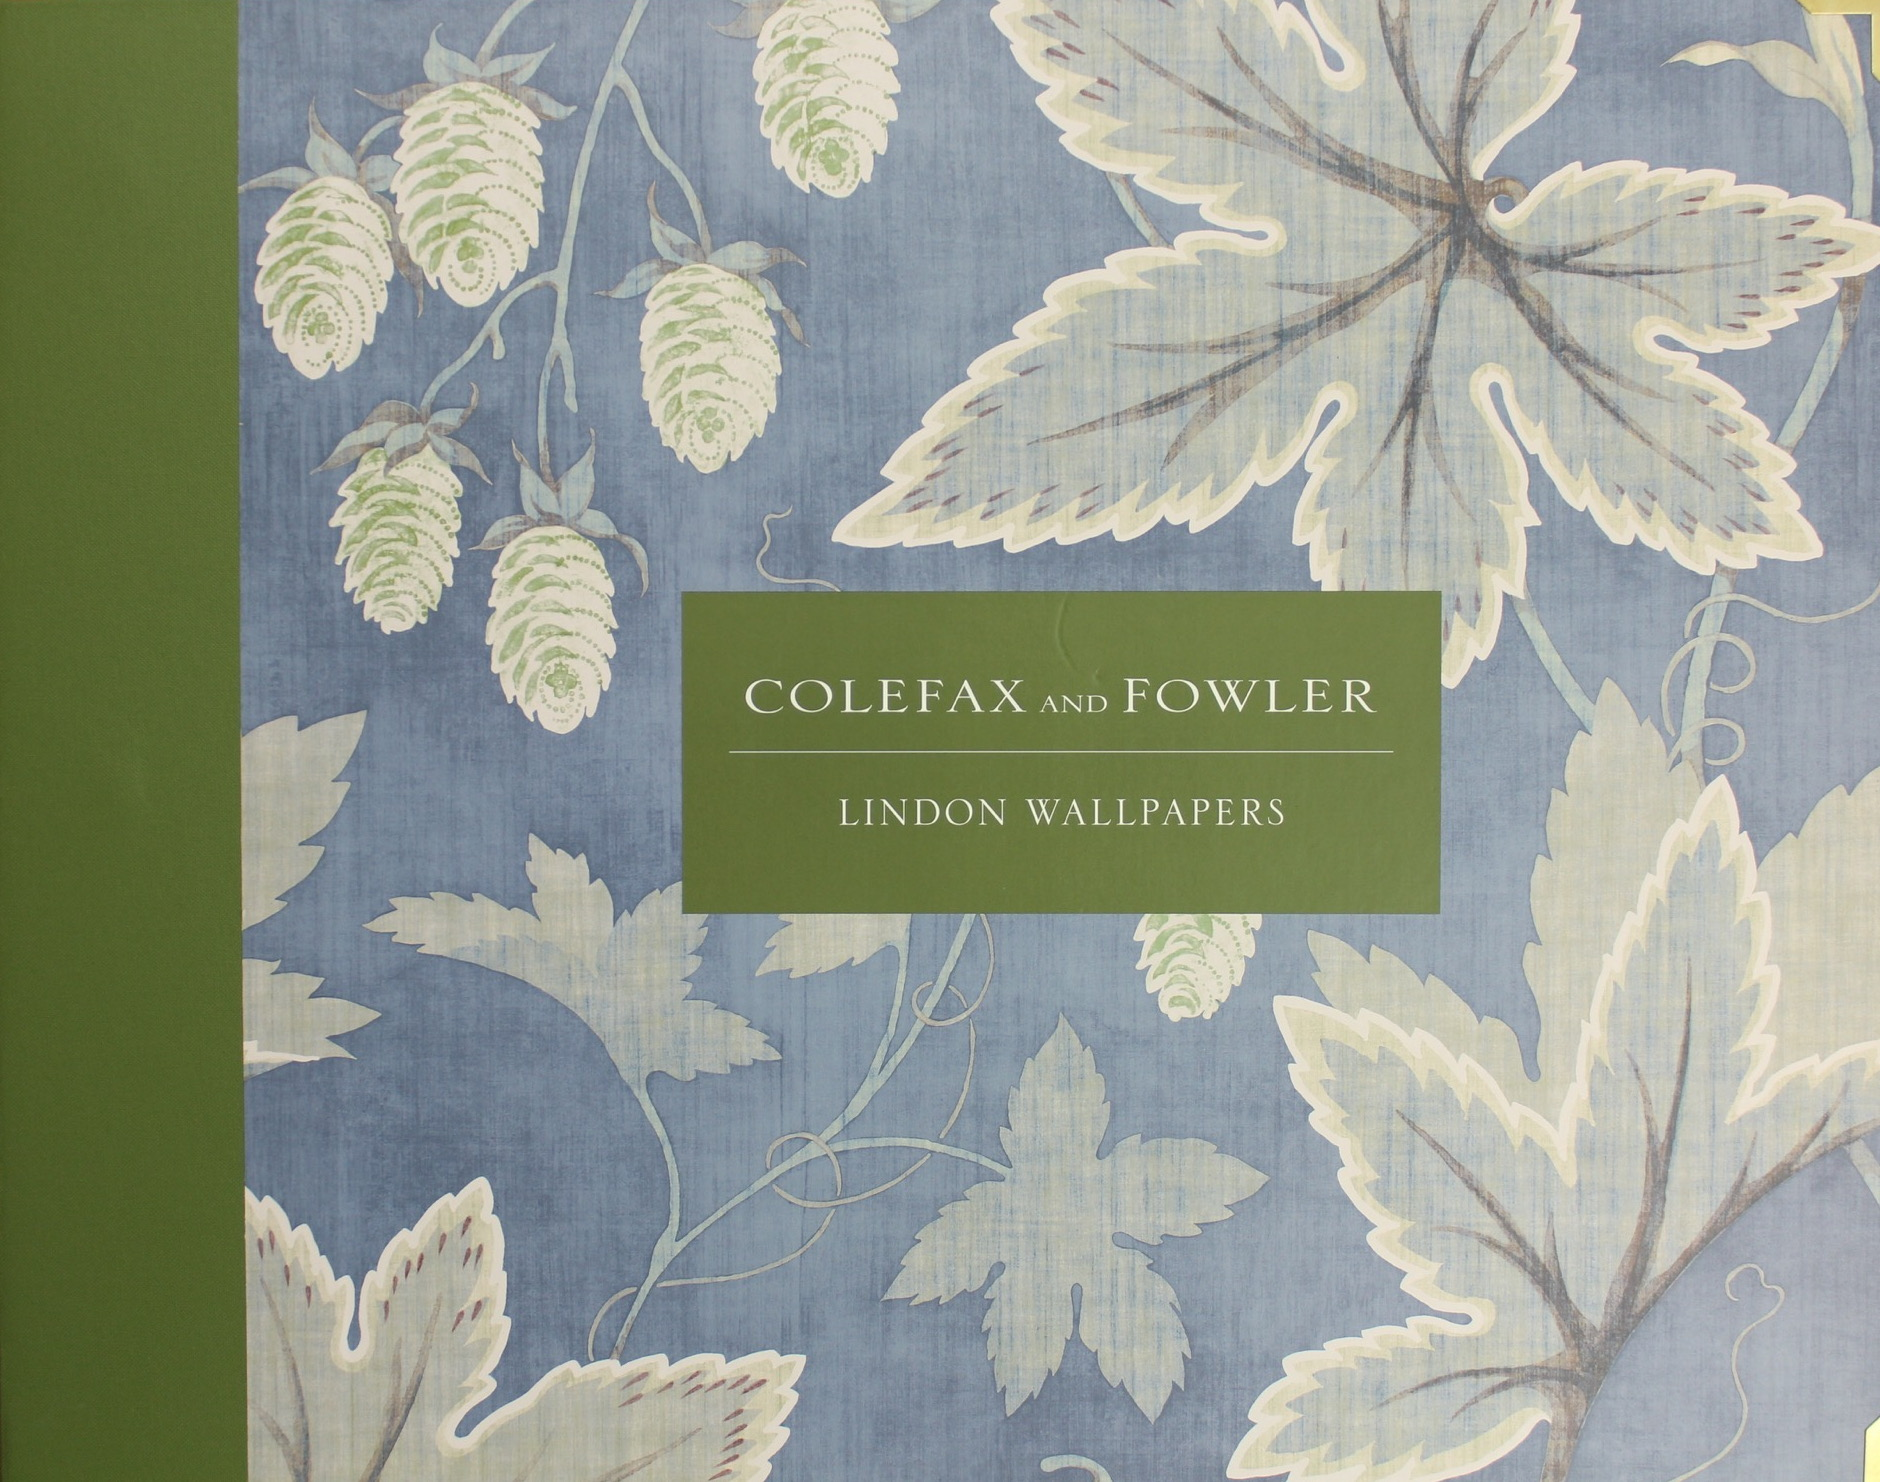 Colefax and Fowler Lindon